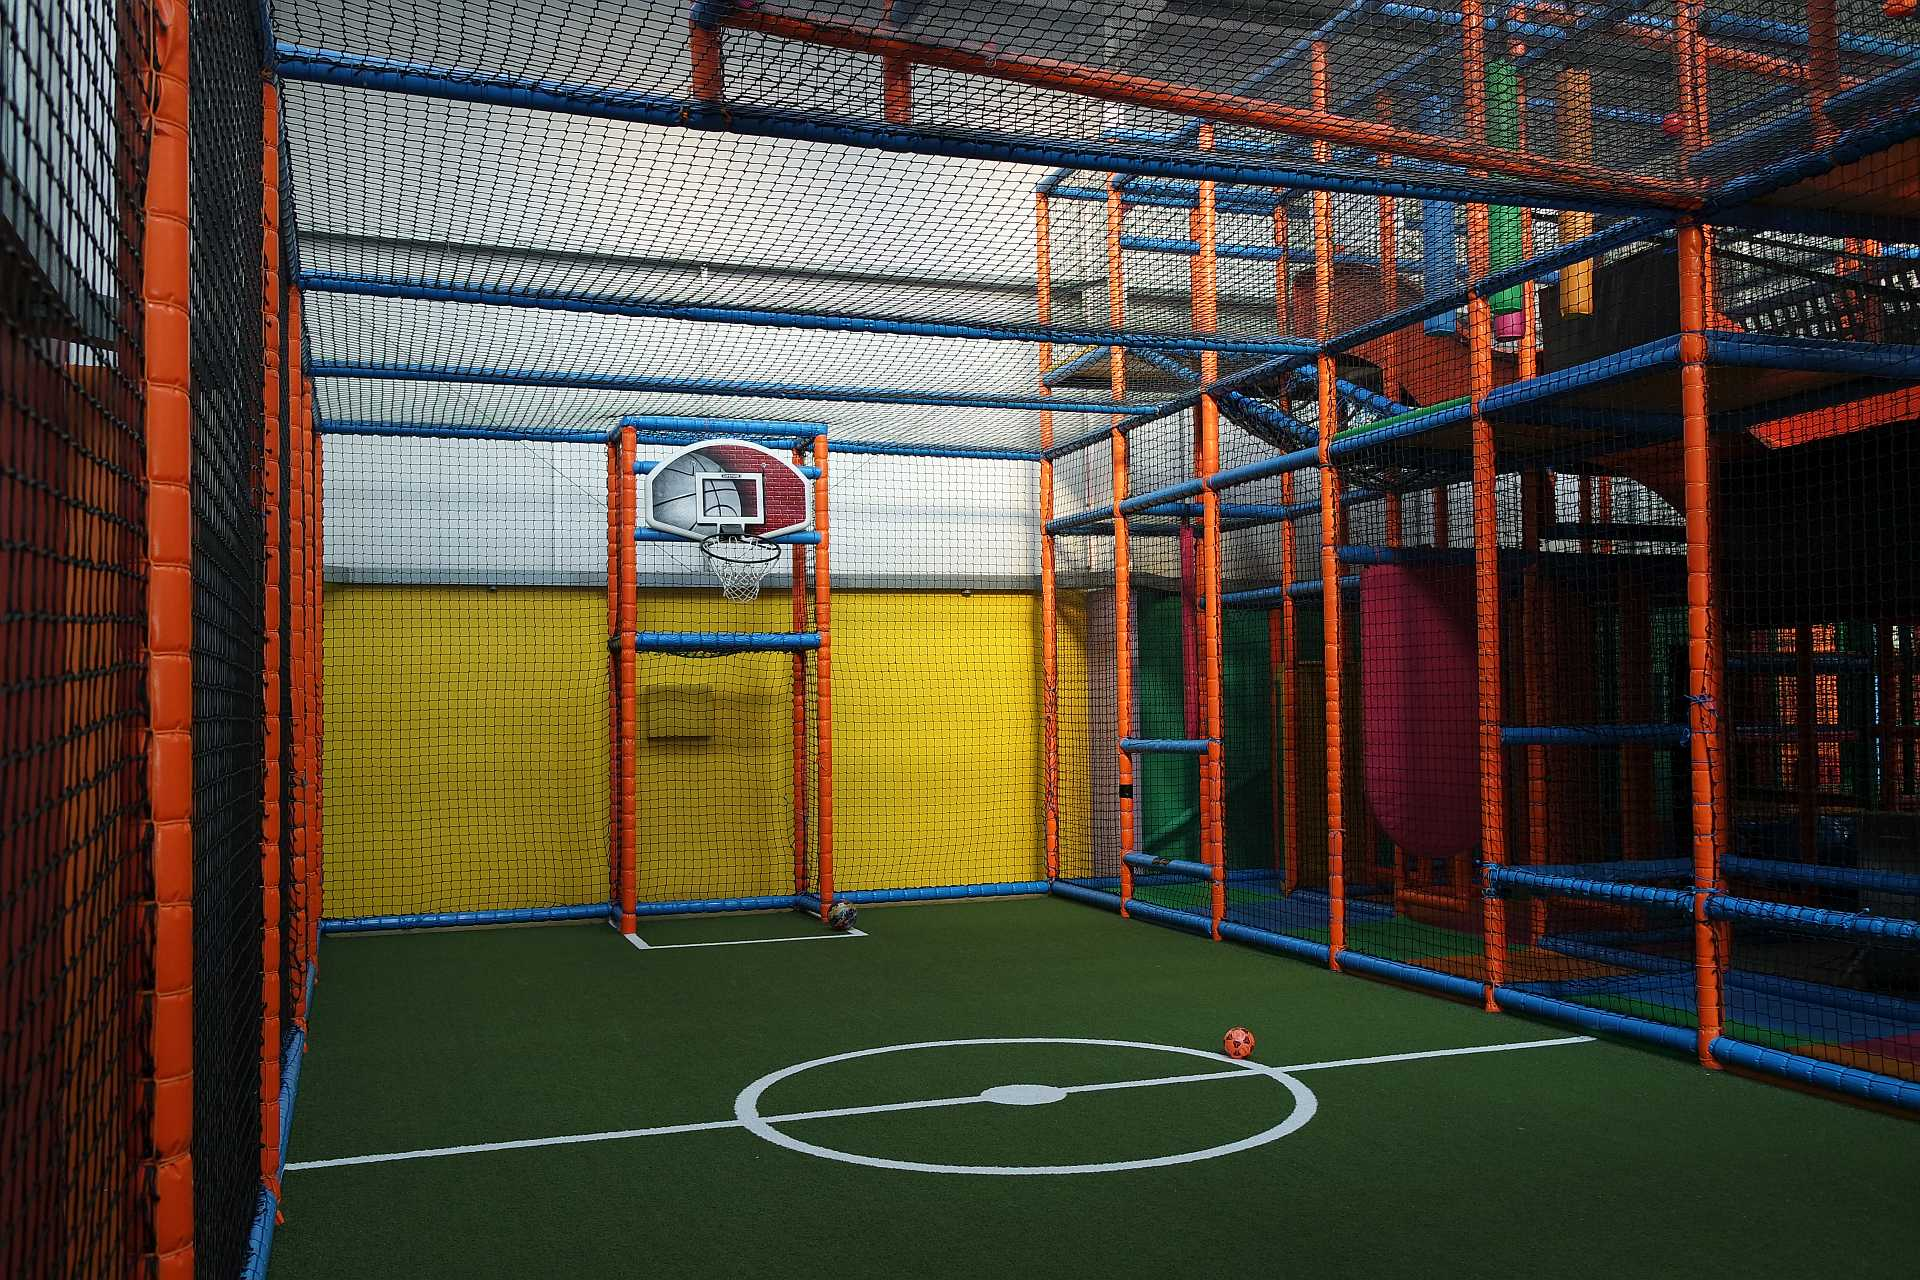 The Zone Play Equipment 4